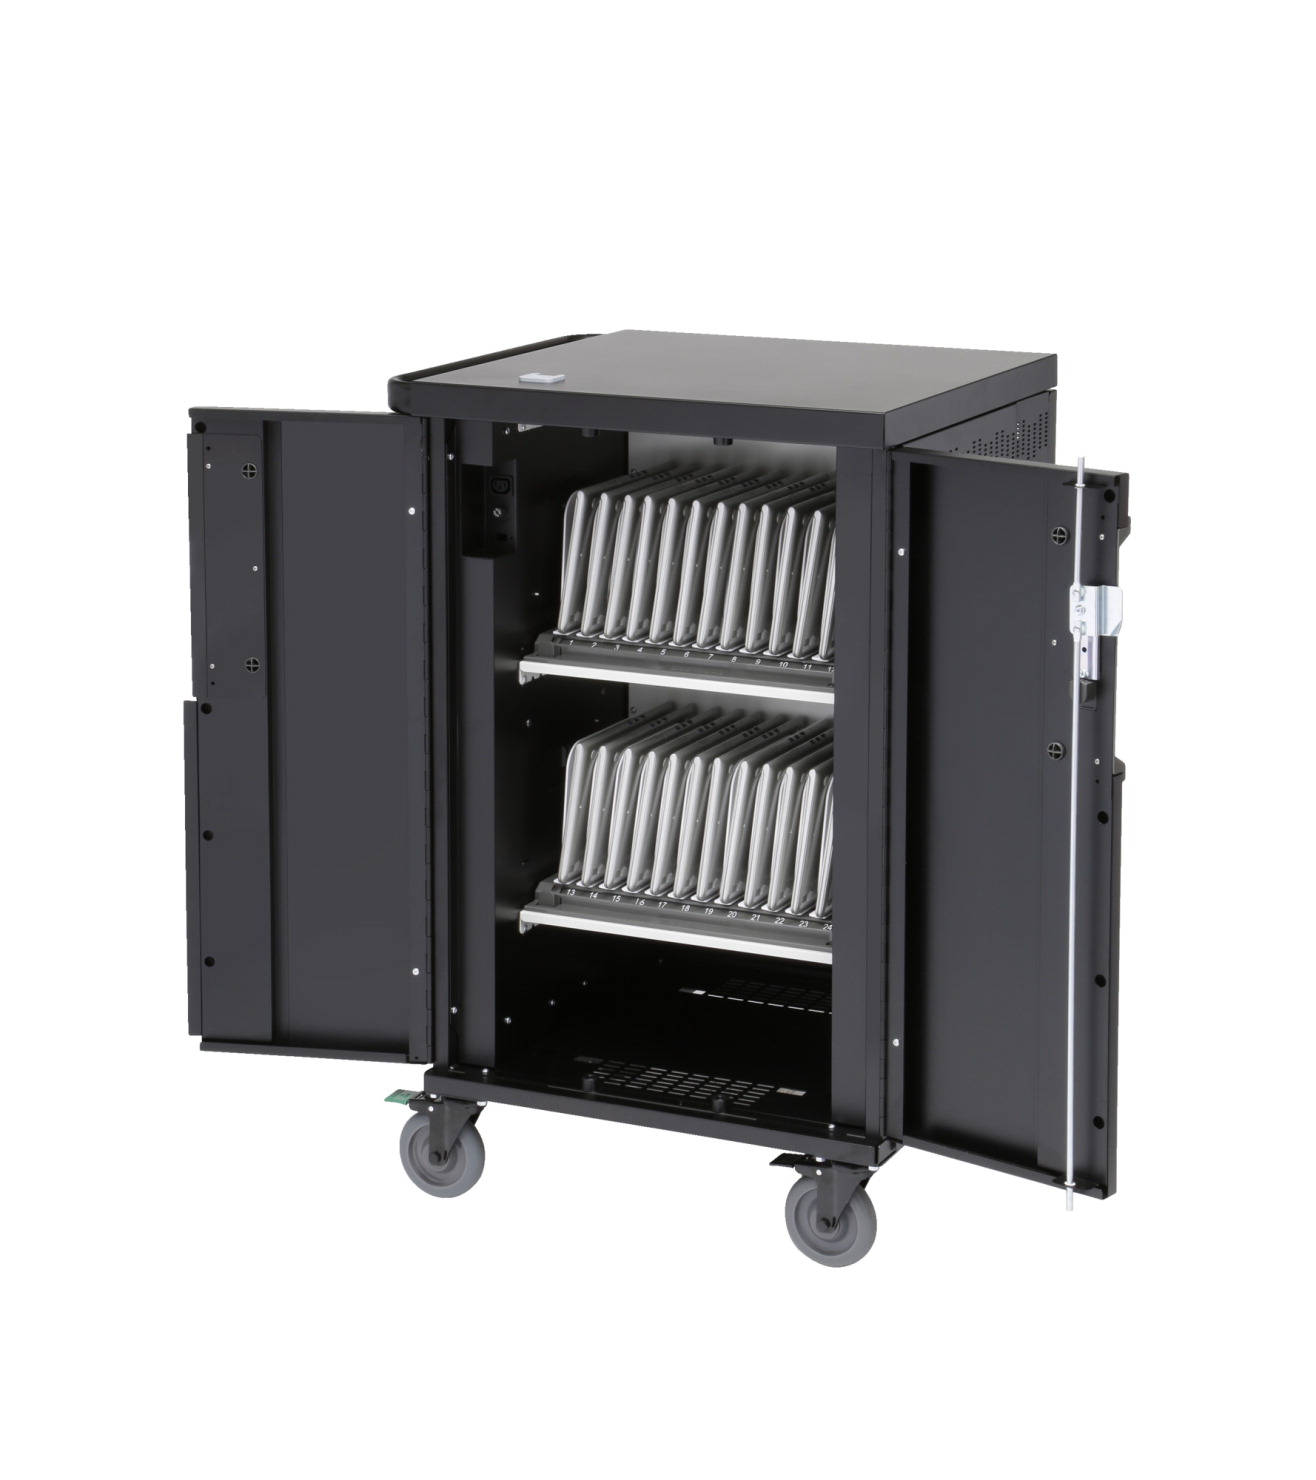 Bretford CoreX Charging Cart, 2 Shelves Holds 20 to 24 Devices